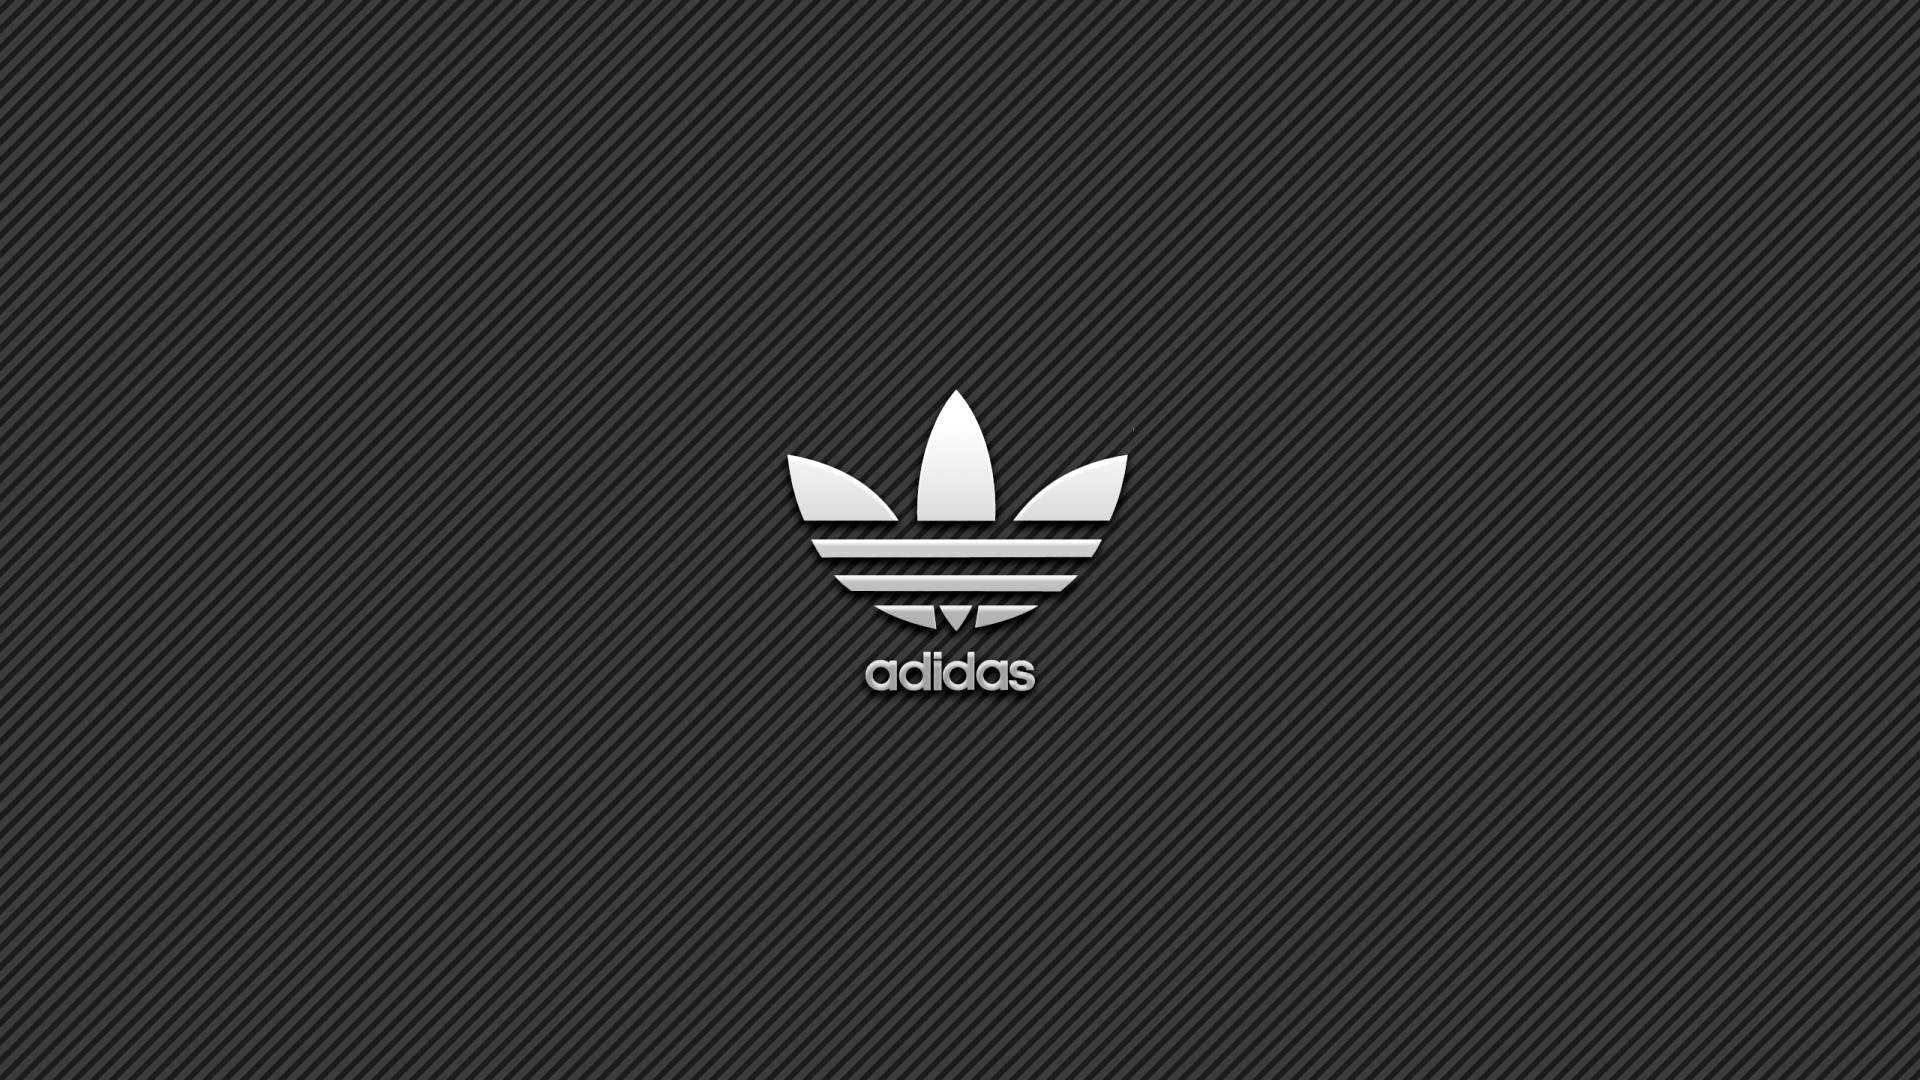 1920x1080 Adidas Soccer Wallpapers 1080p